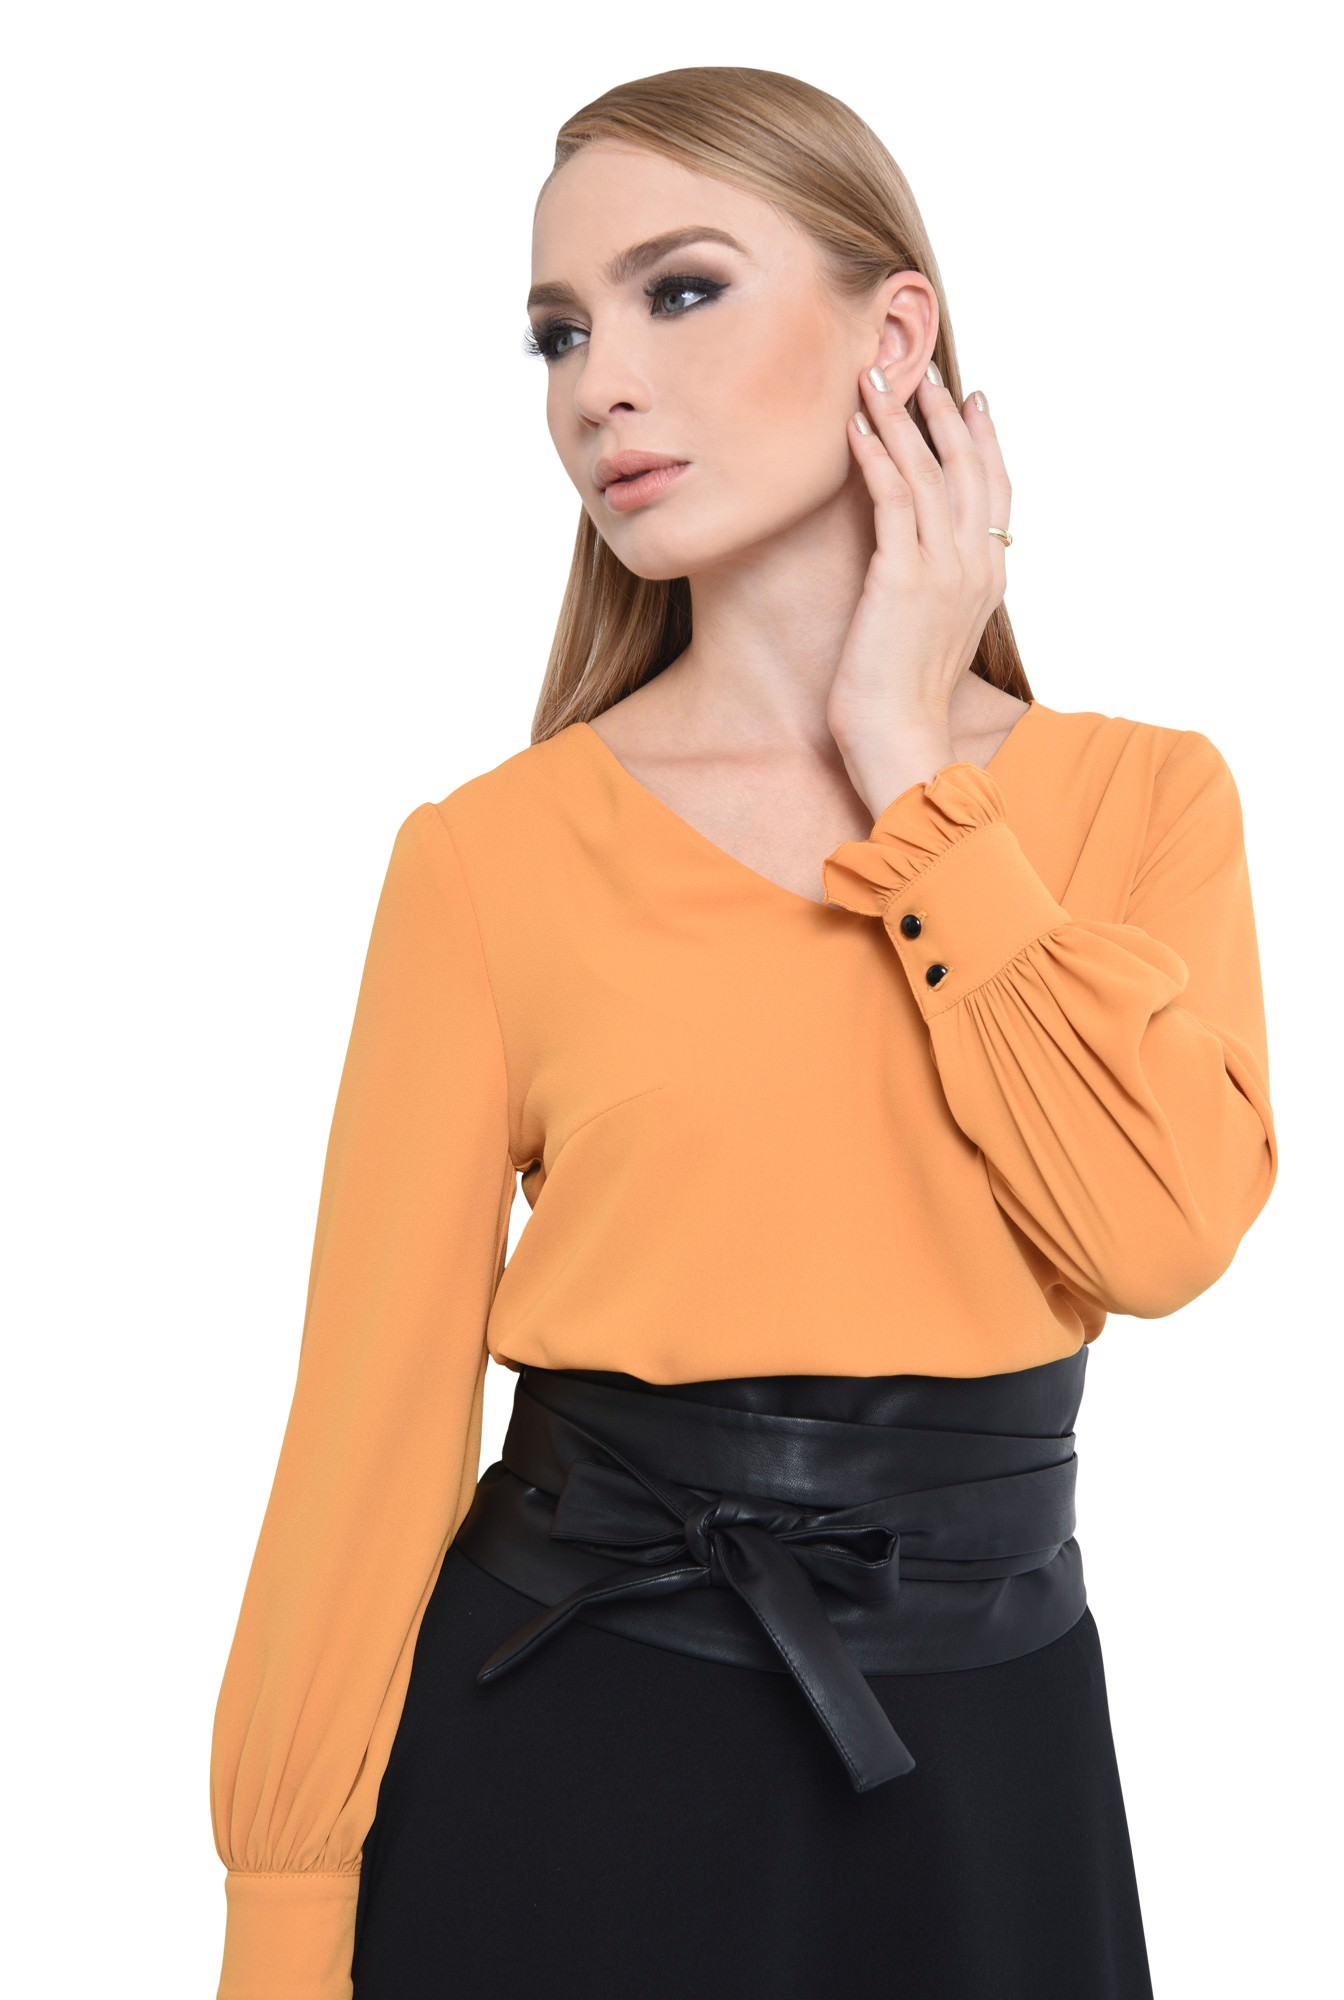 2 - BLUZA OFFICE BL 292-MUSTAR